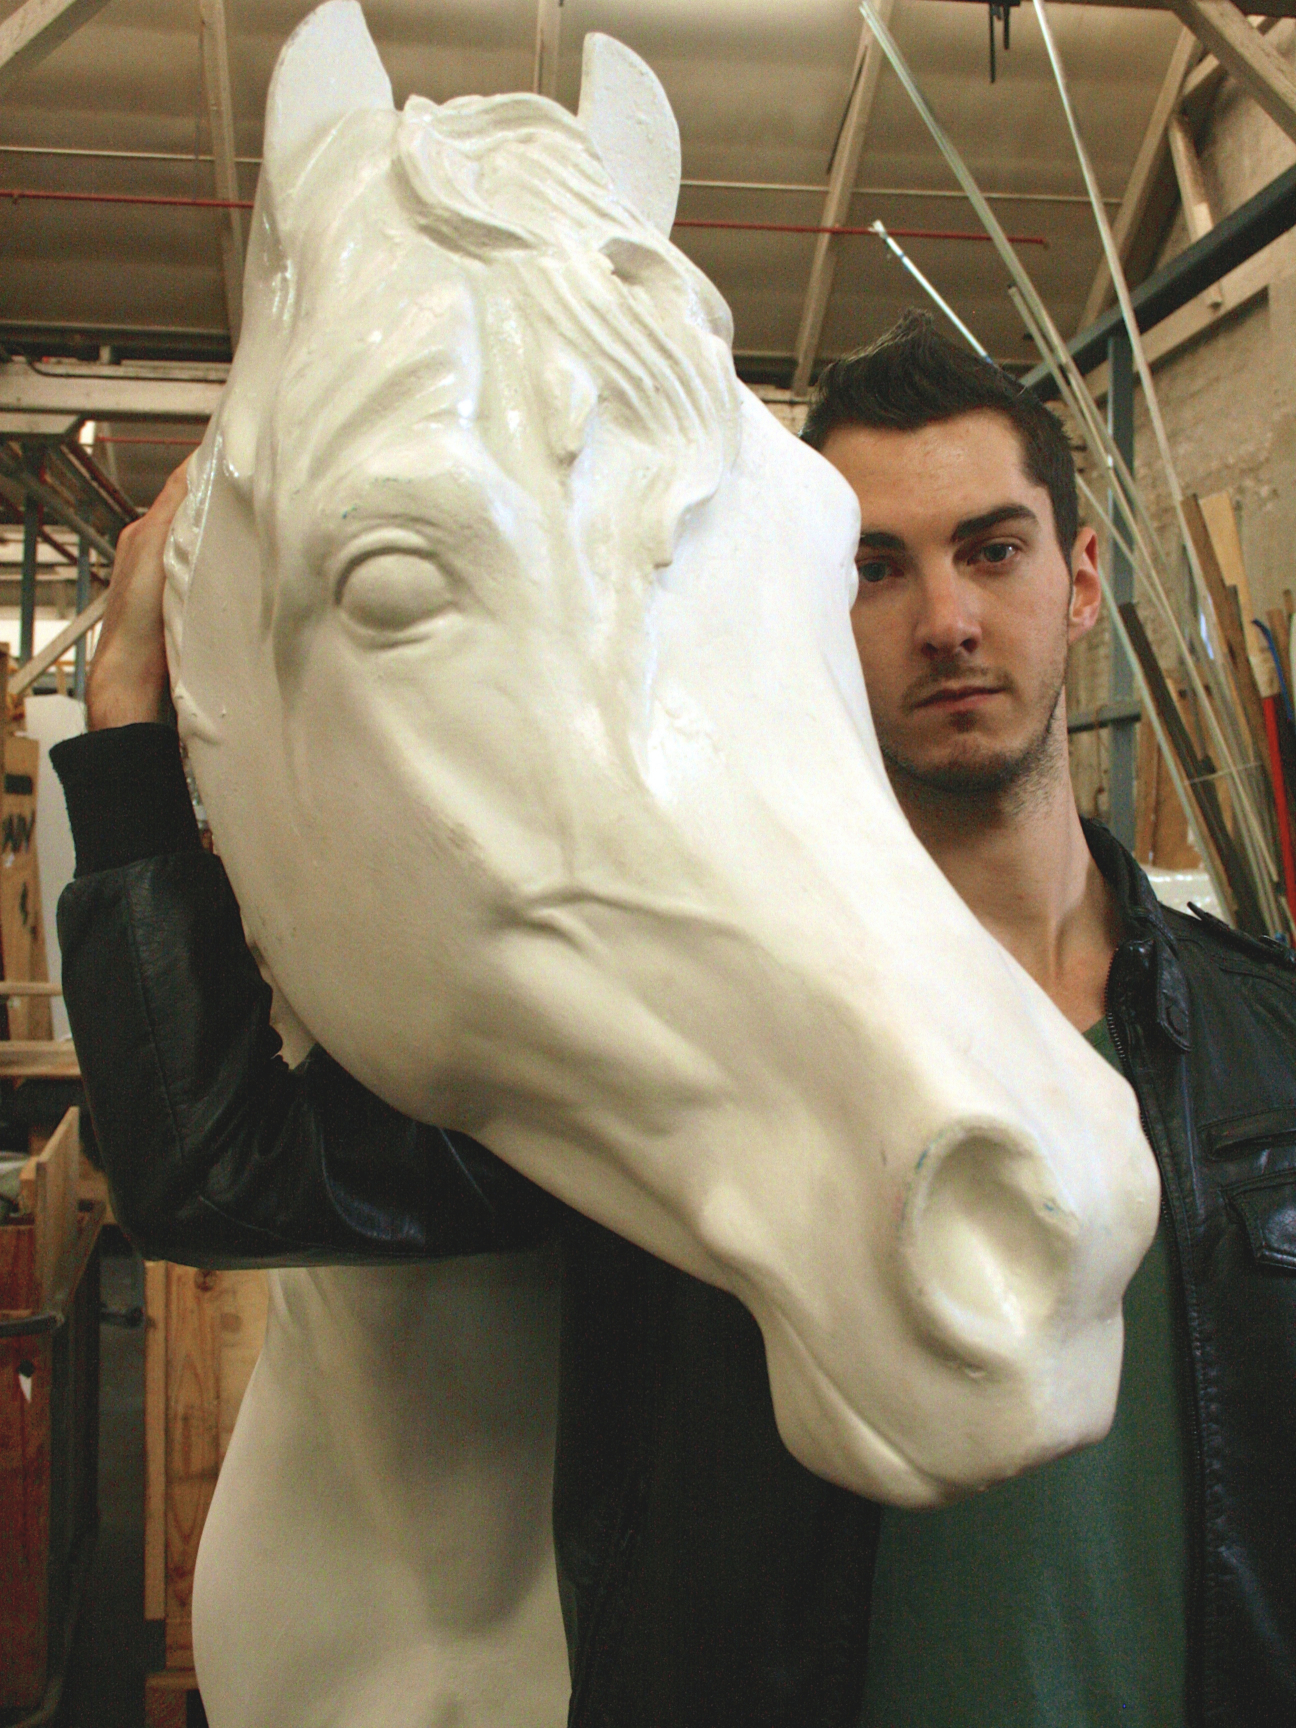 a summary of the play equus by peter shaffer Equus is a play by peter shaffer written in 1973, telling the story of a psychiatrist who attempts to treat a young man who has a pathological religious fascination with horses.